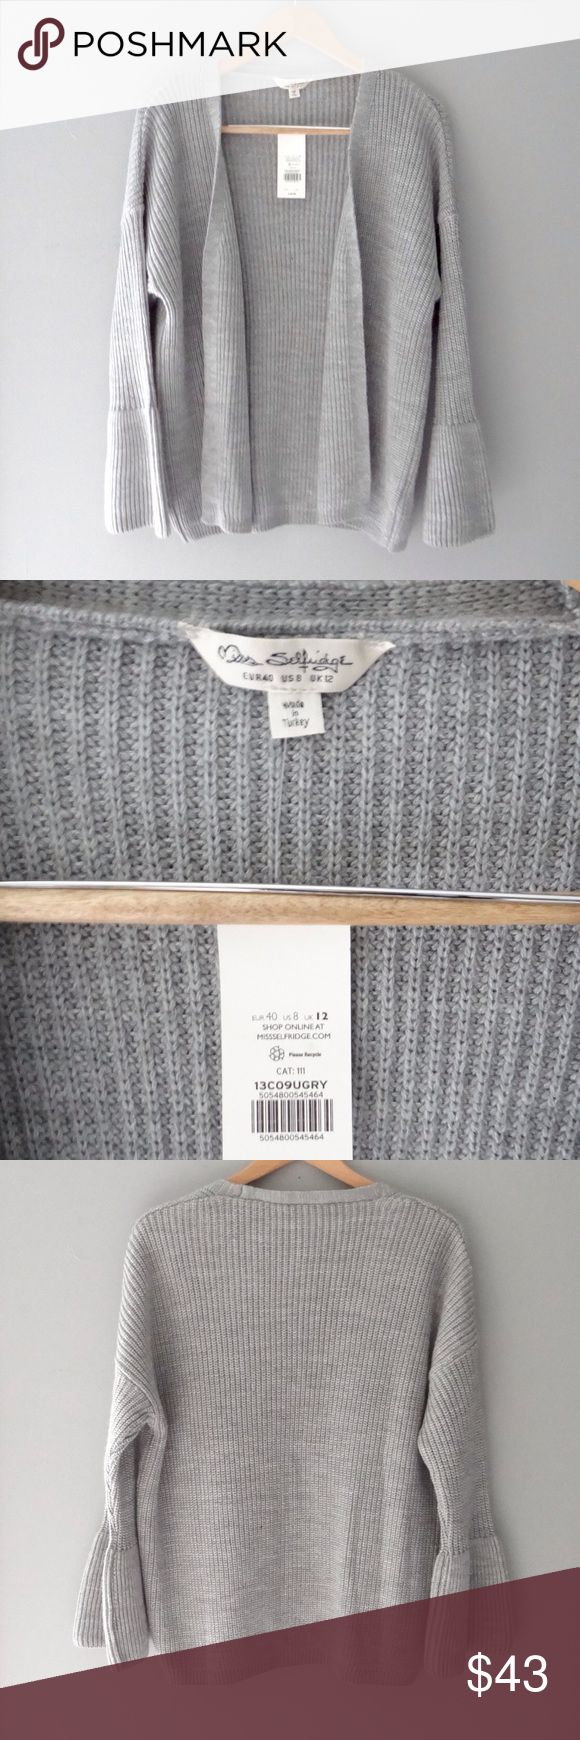 Miss Selfridge Open Front Cardigan NWT Never worn, open front cardigan. Material content; 100% acrylic Miss Selfridge Sweaters Cardigans